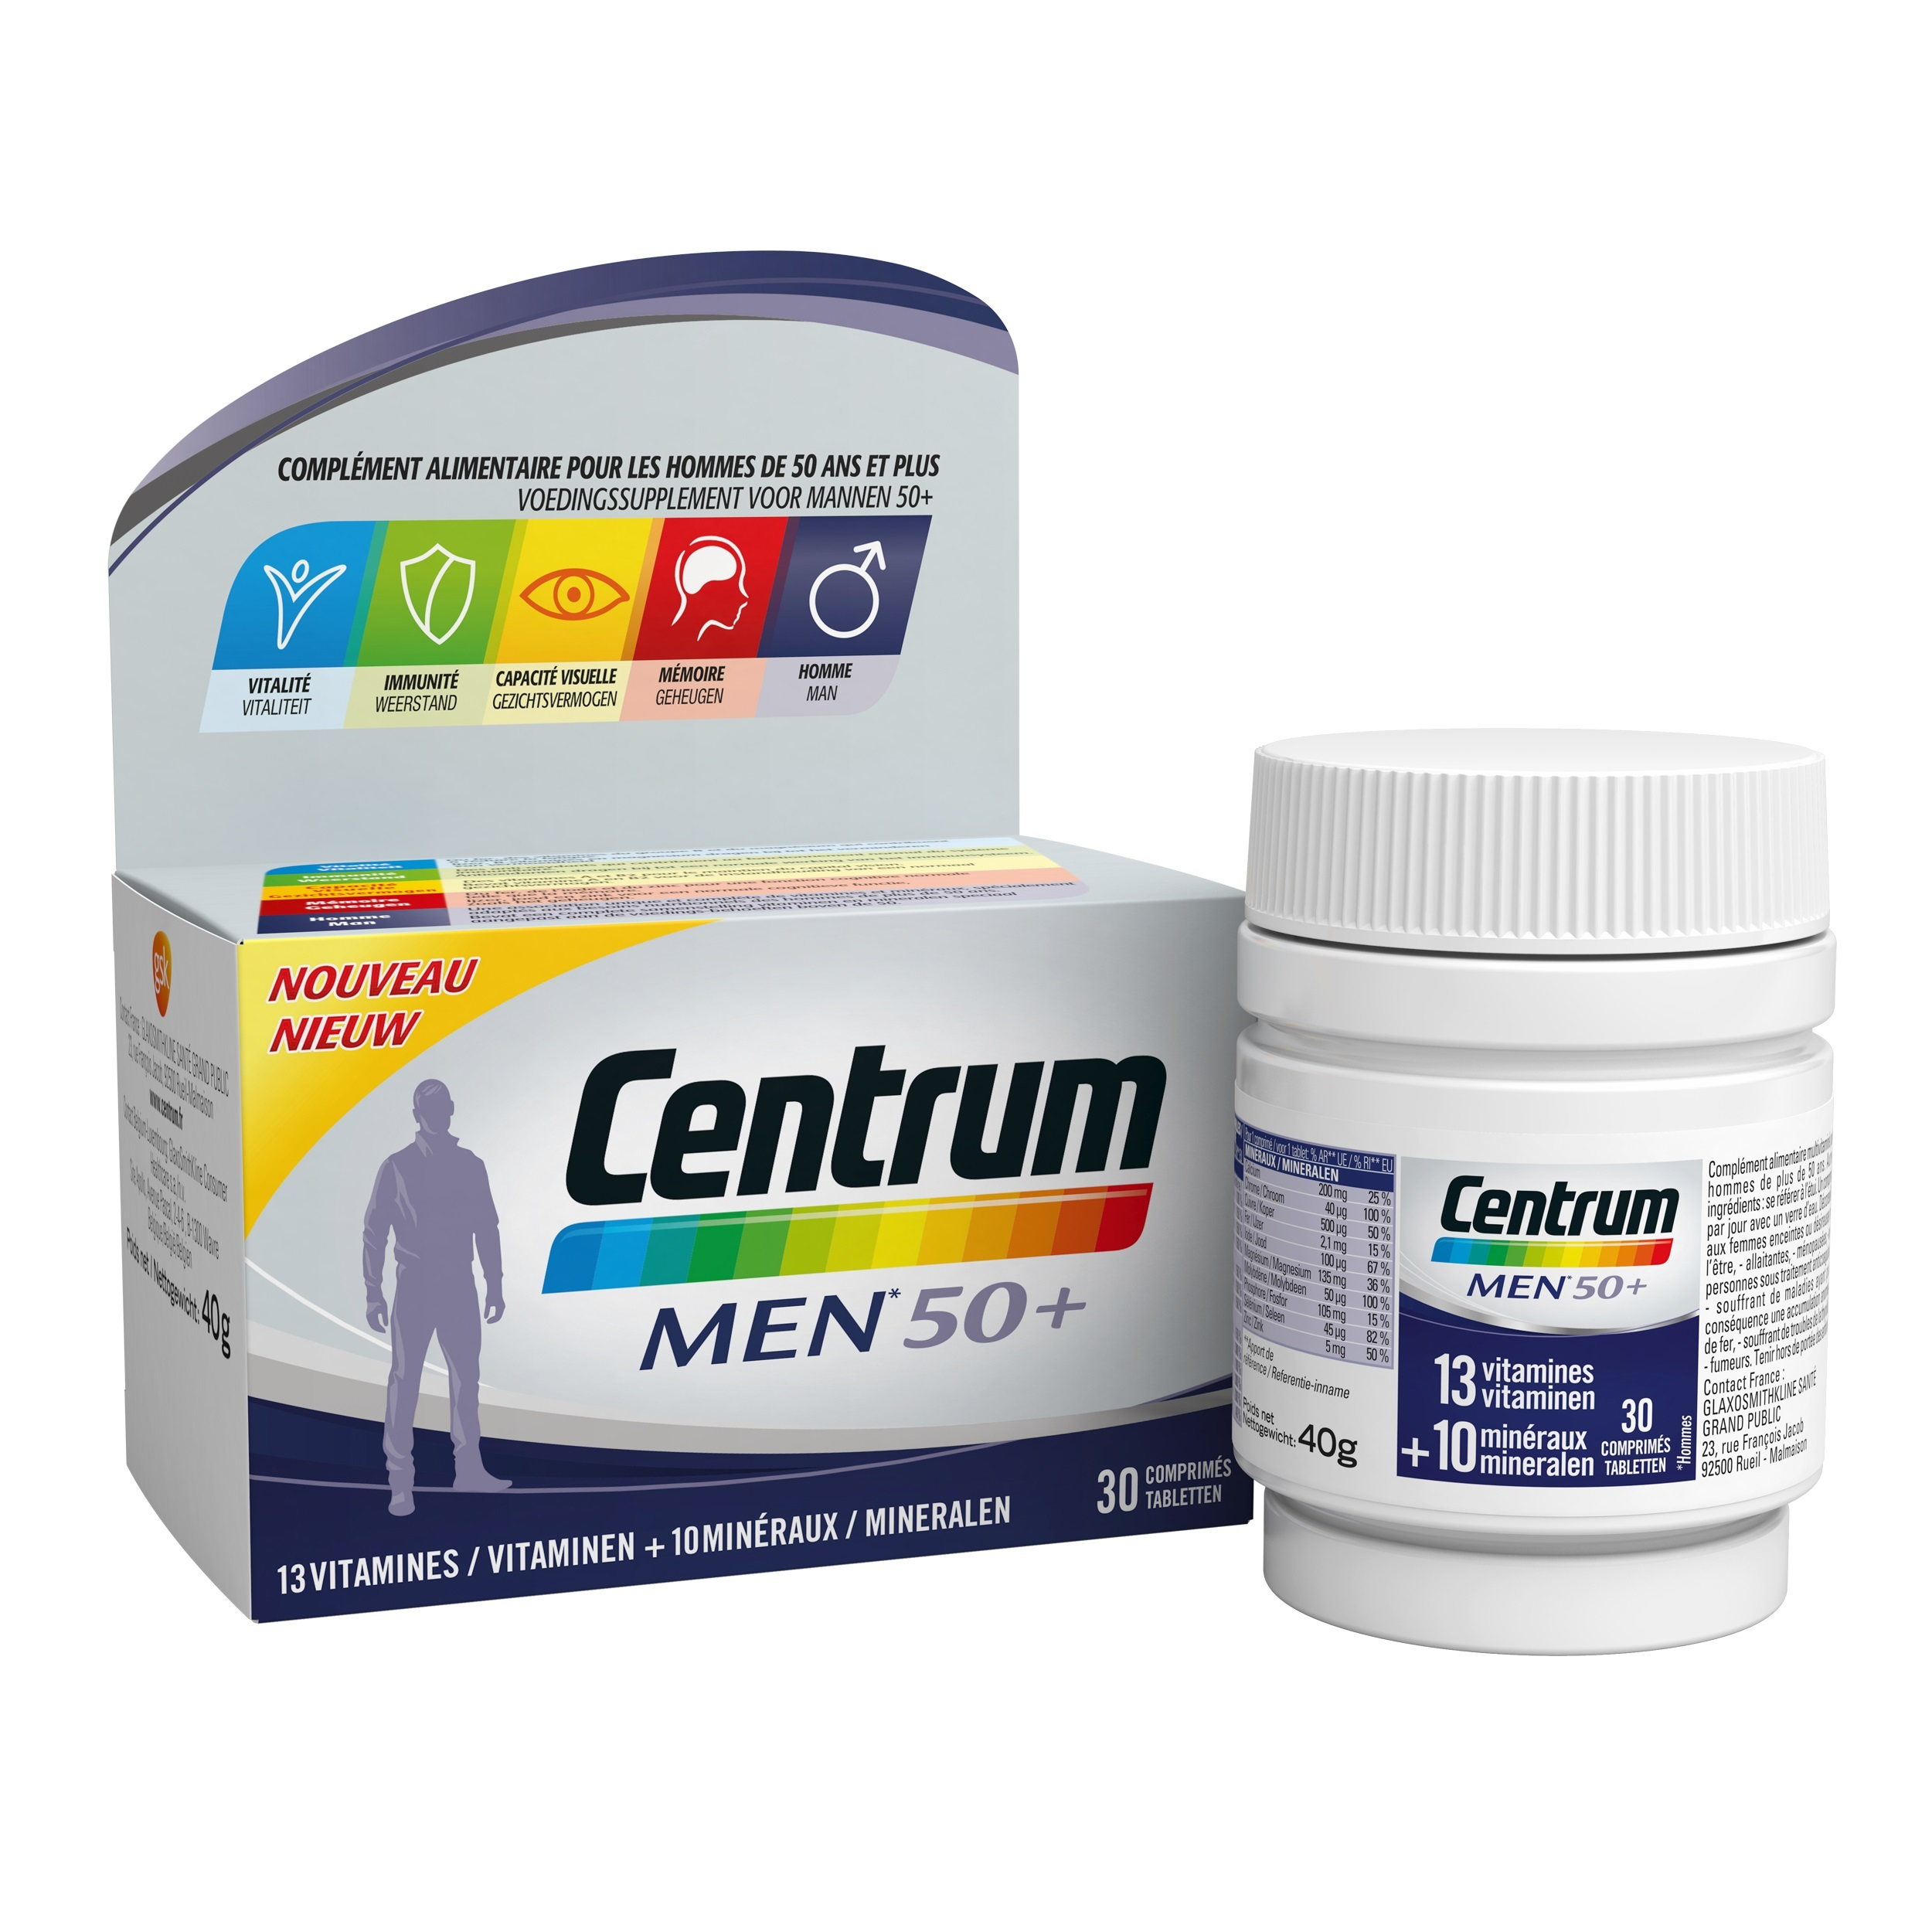 Image of Centrum Men 50+